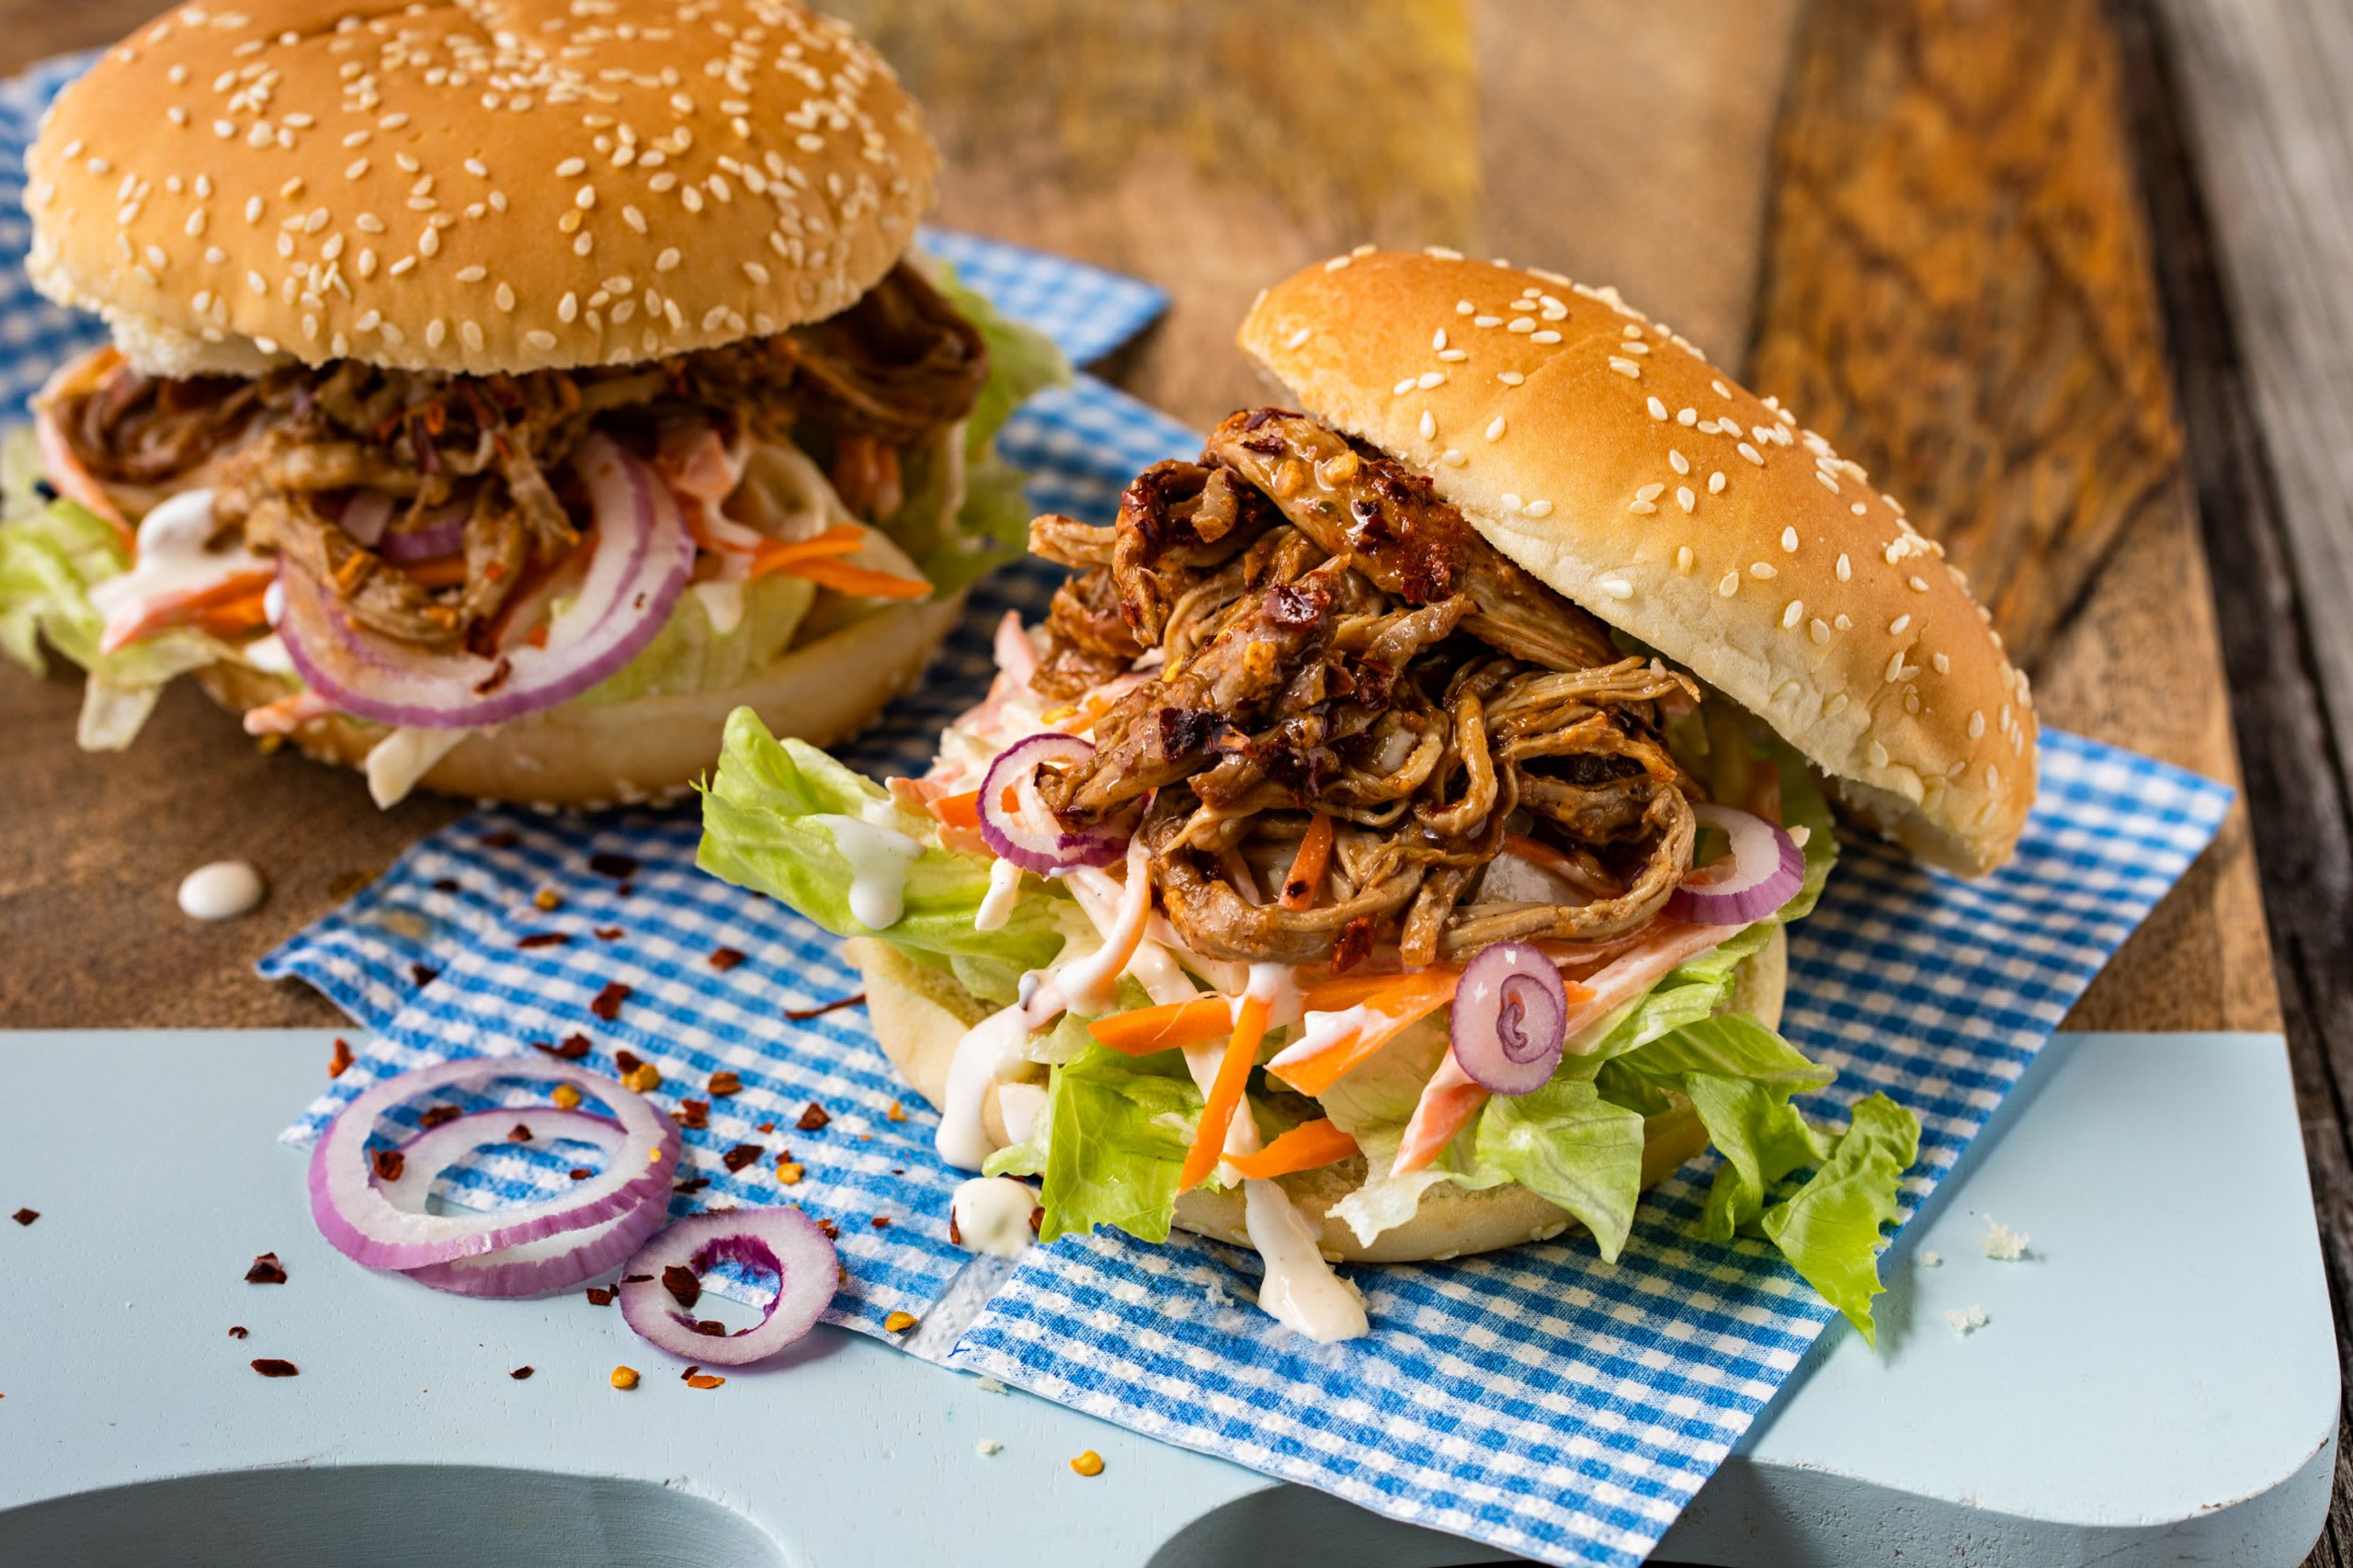 Pulled pork burger (burger de porc effiloché)